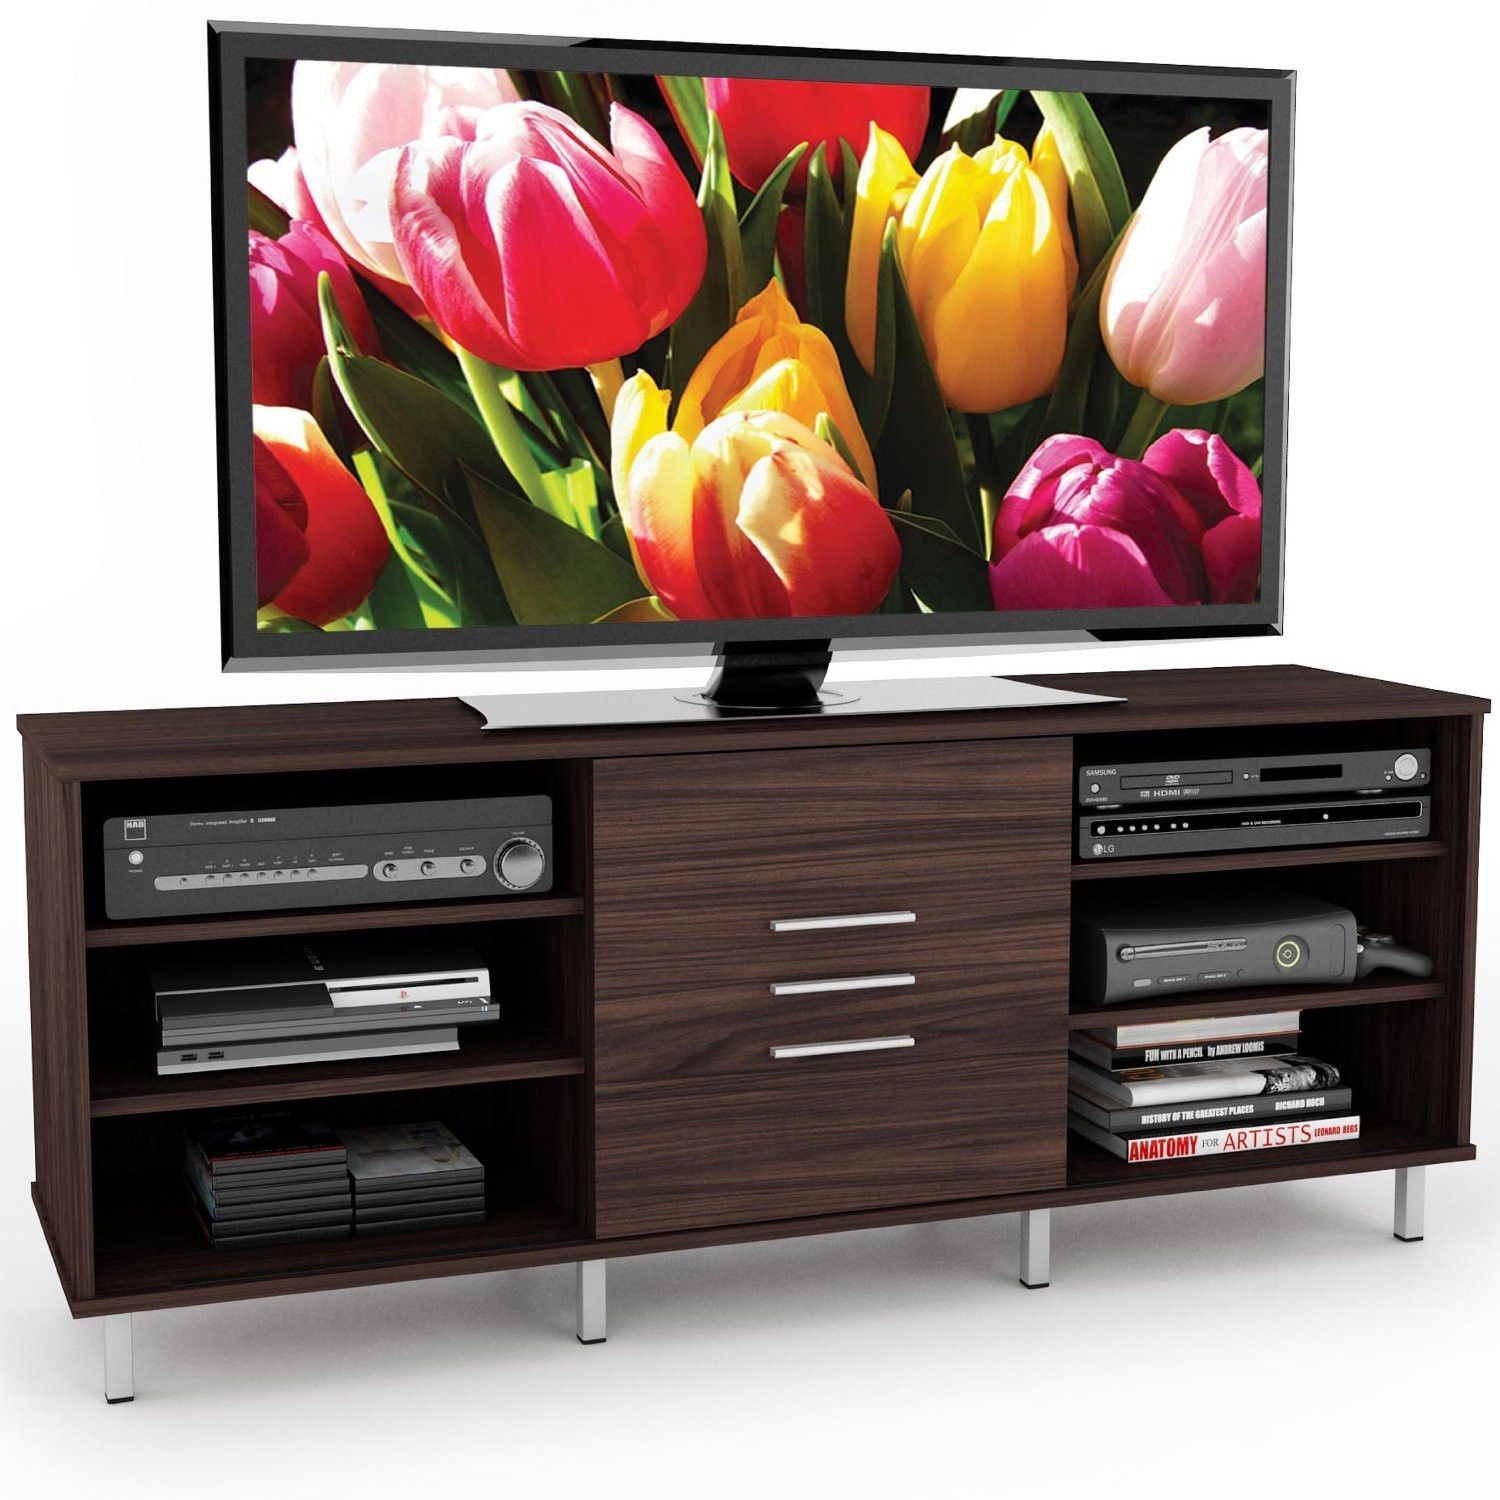 Modern Ebony Pecan Finish Tv Stand Fits Up To 65 Inch Tvs